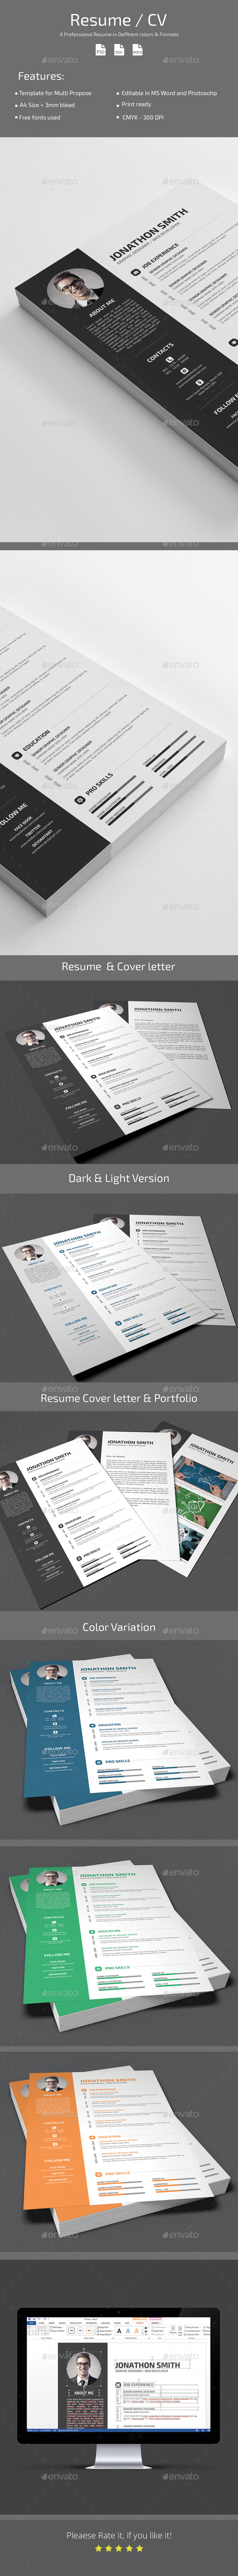 CV Resume - Stationery Print Templates